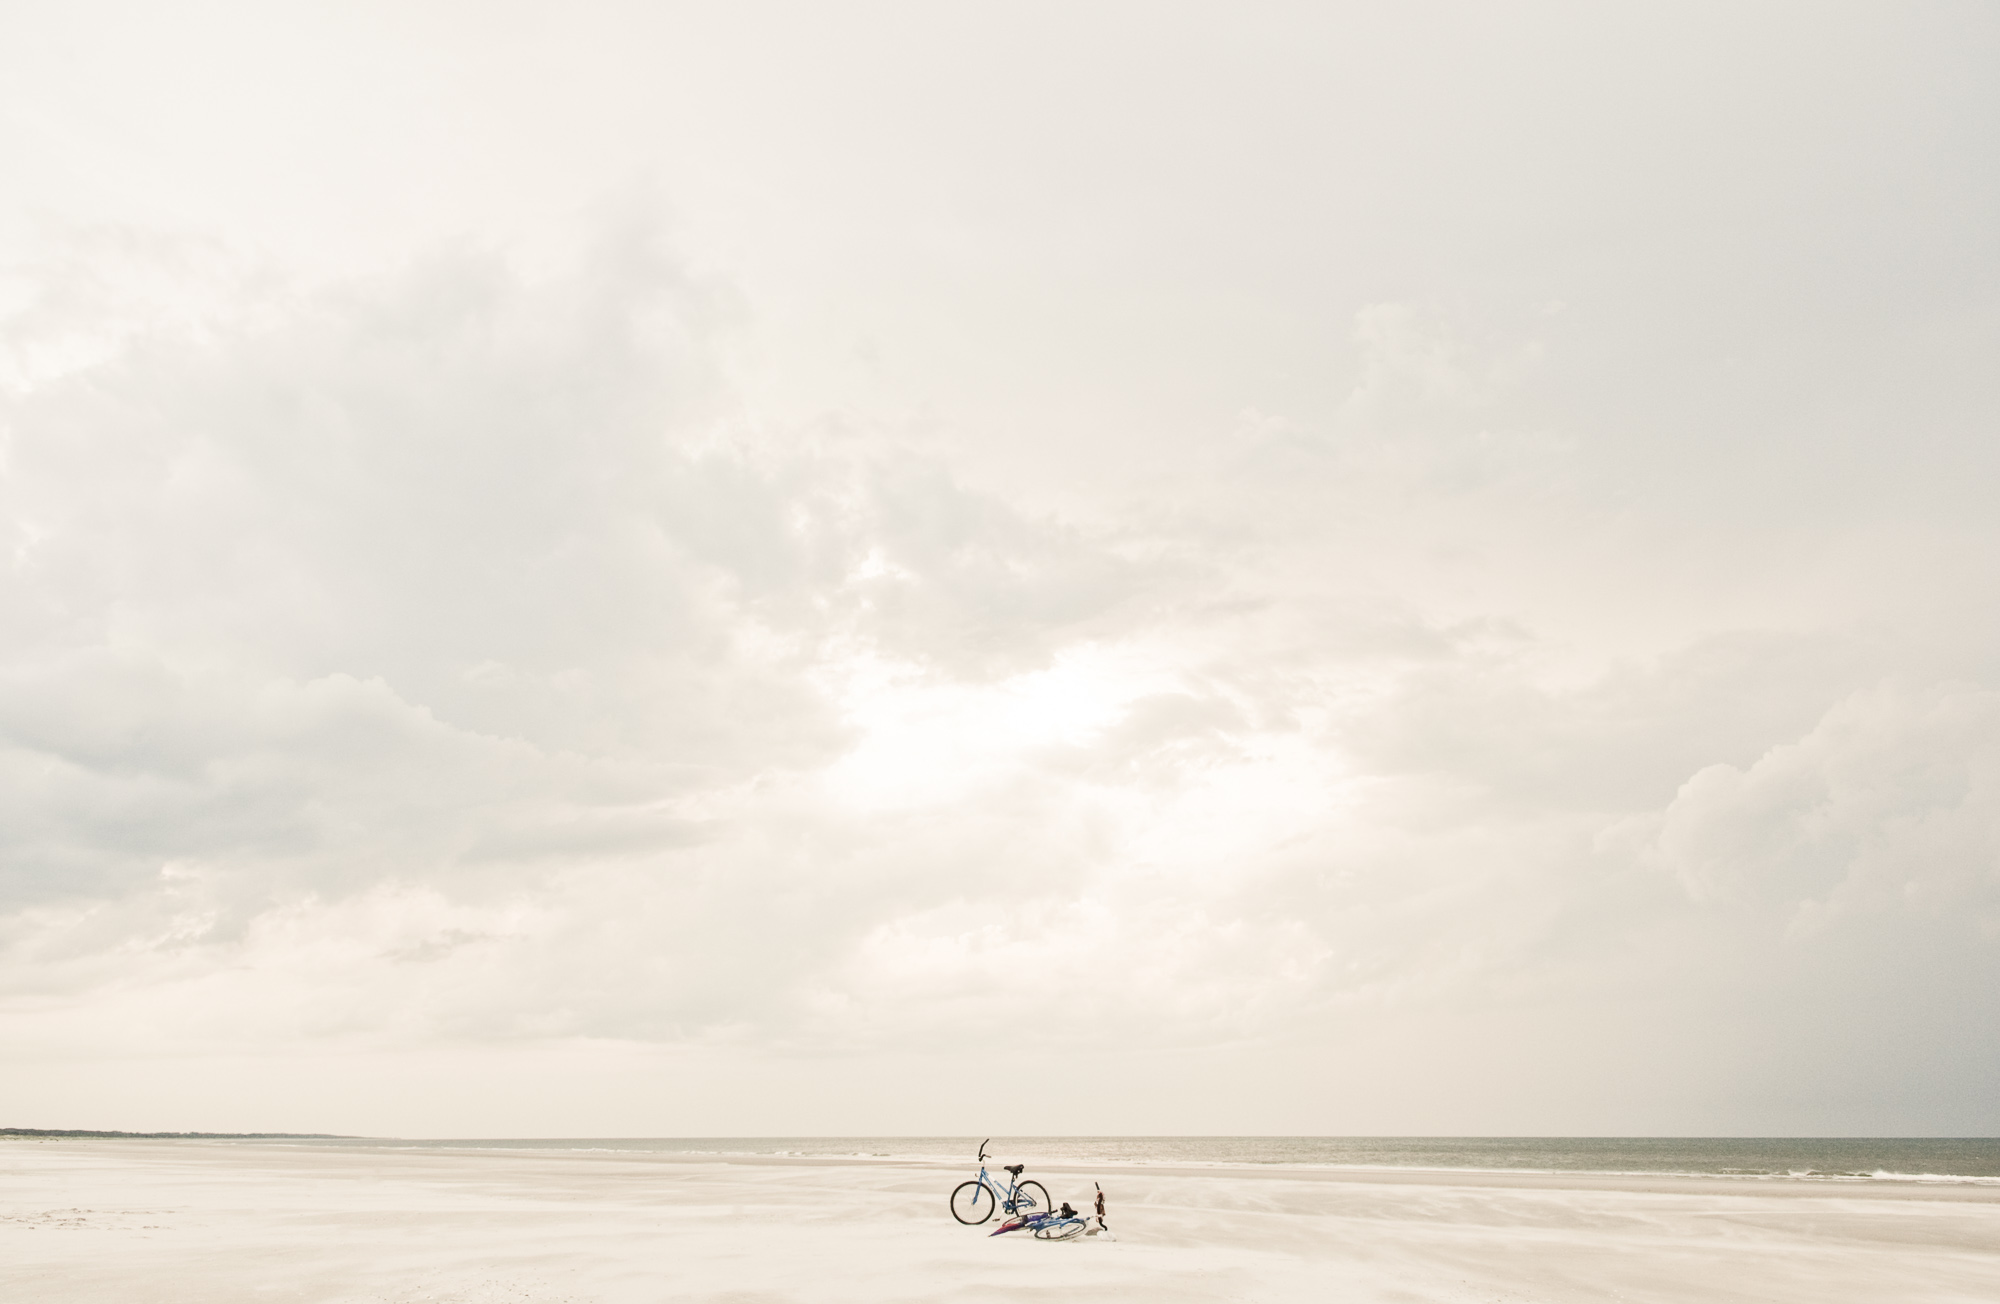 Bicycles on the beach - color.jpg